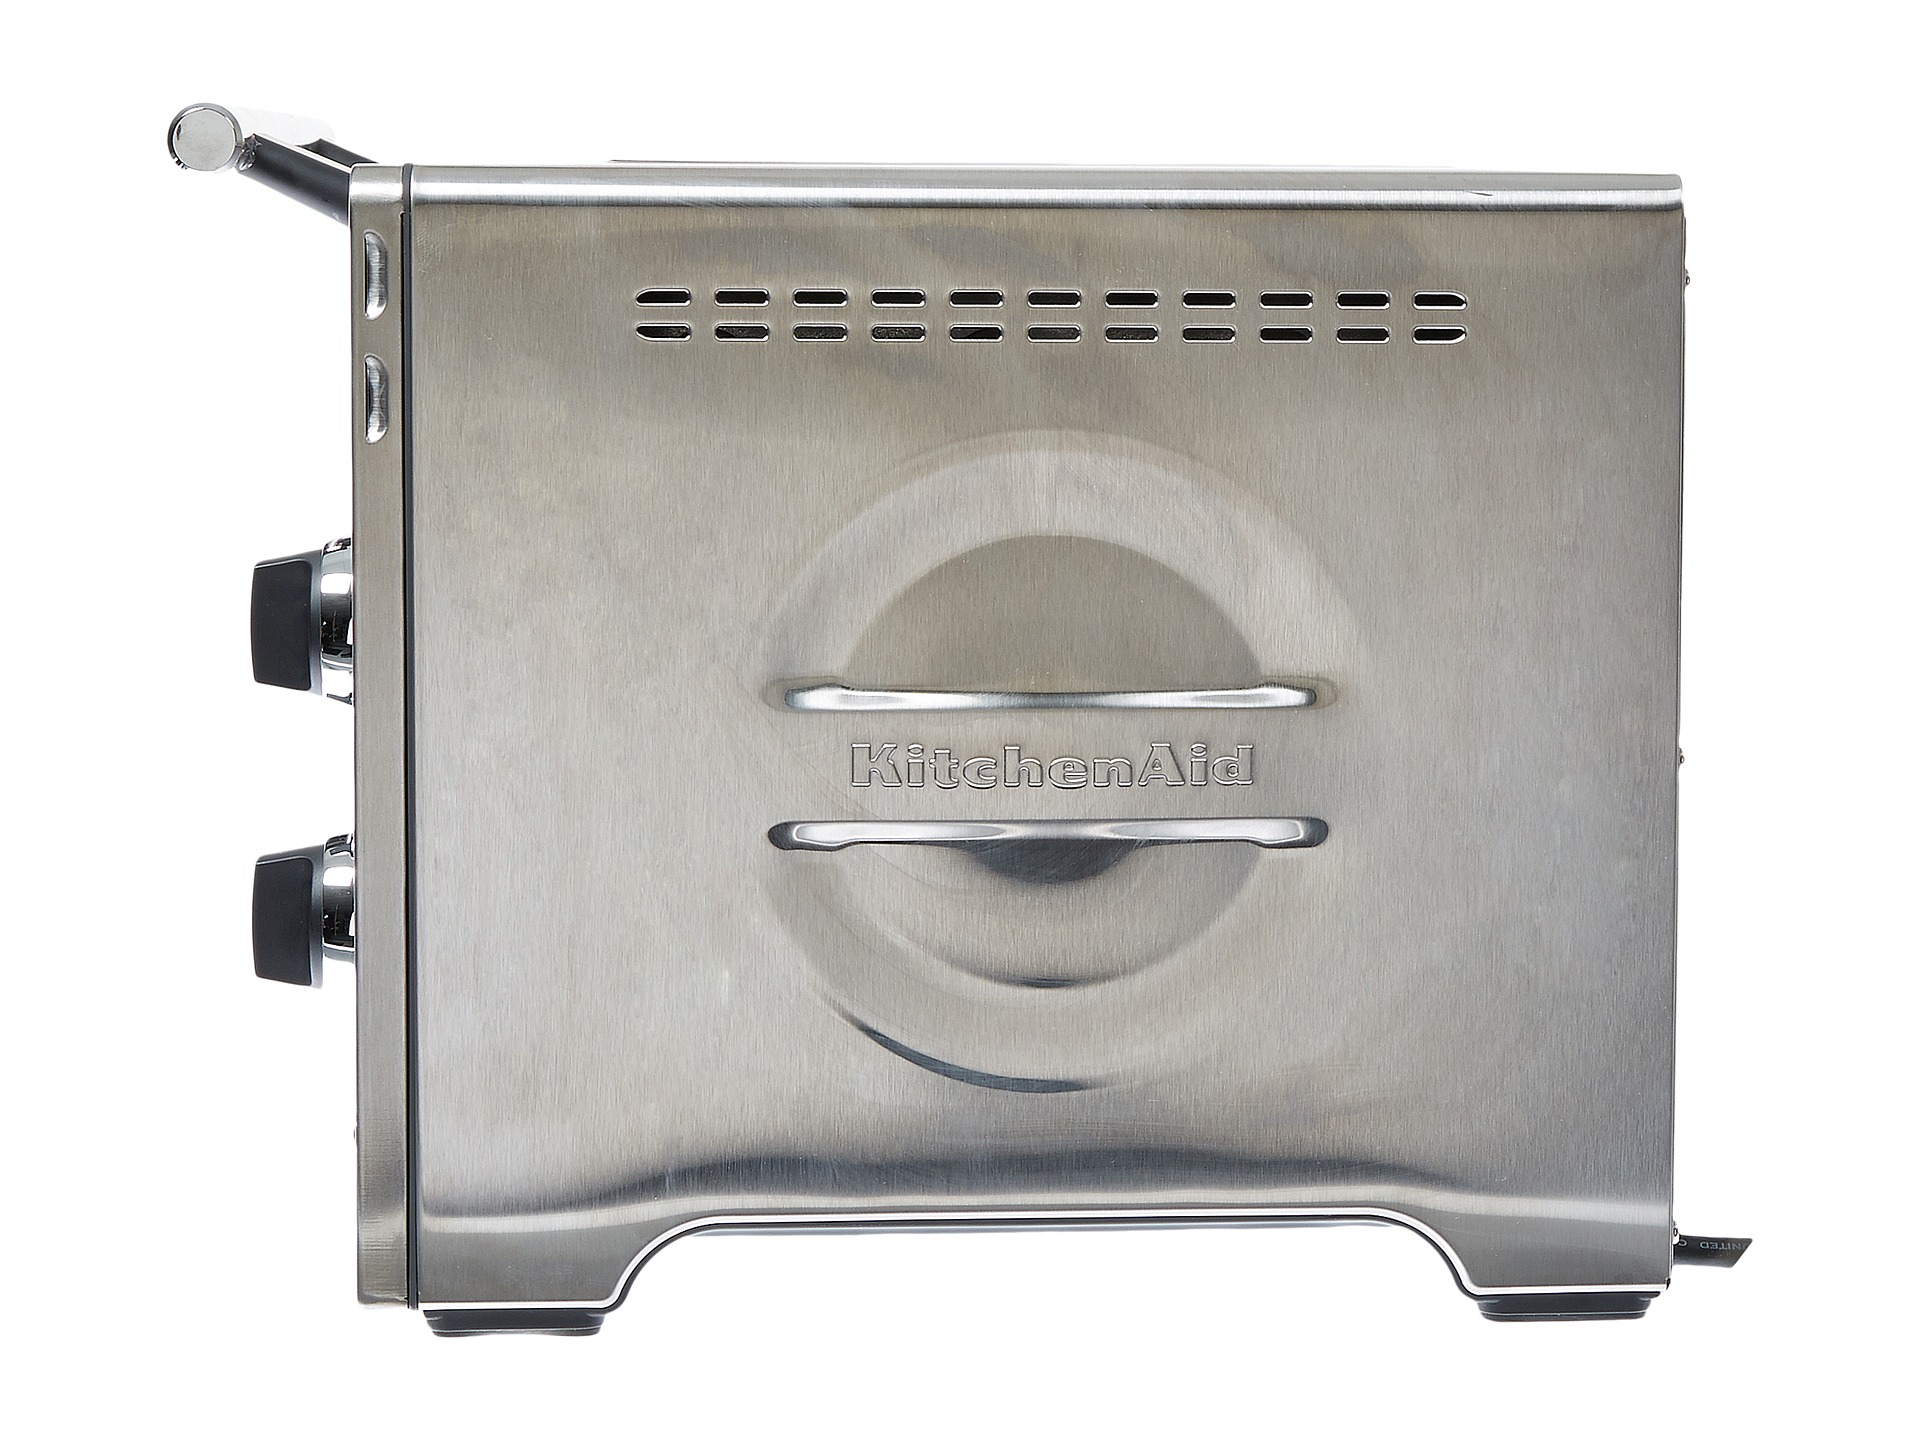 Kitchenaid Countertop Stove Parts : No results for kitchenaid kco273ss 12 convection countertop oven ...